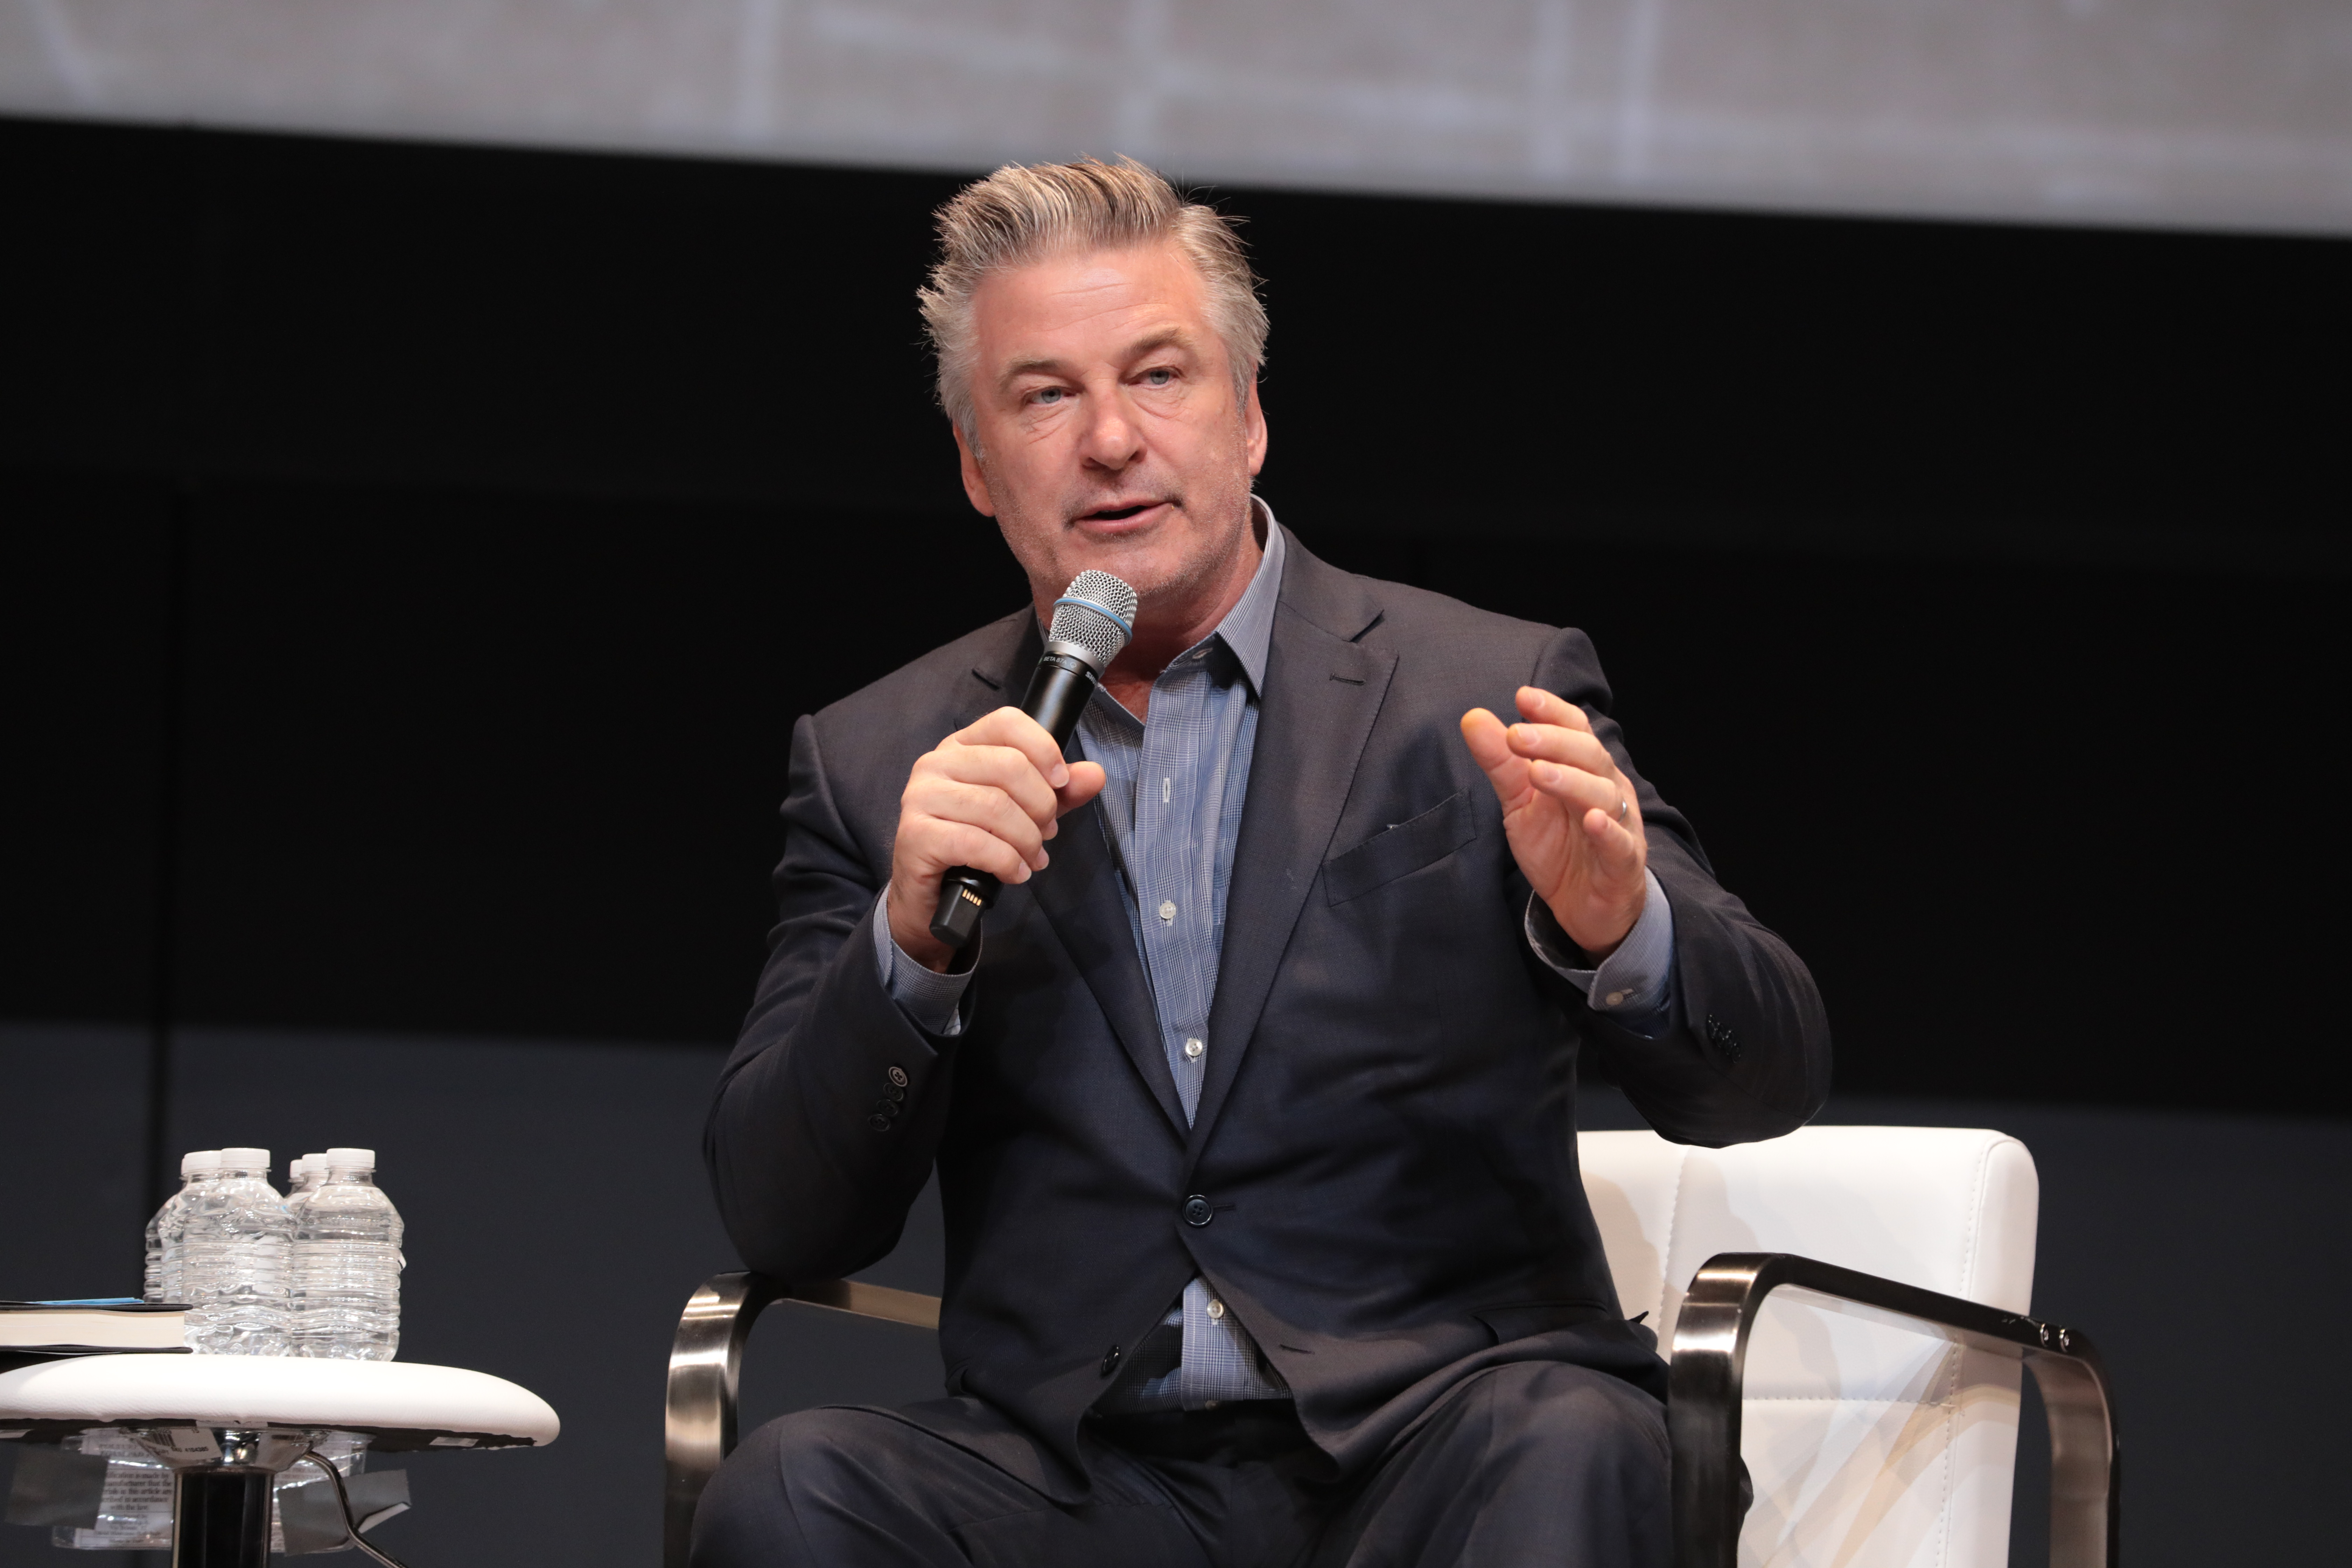 Alec Baldwin speaking at an event produced by massAV